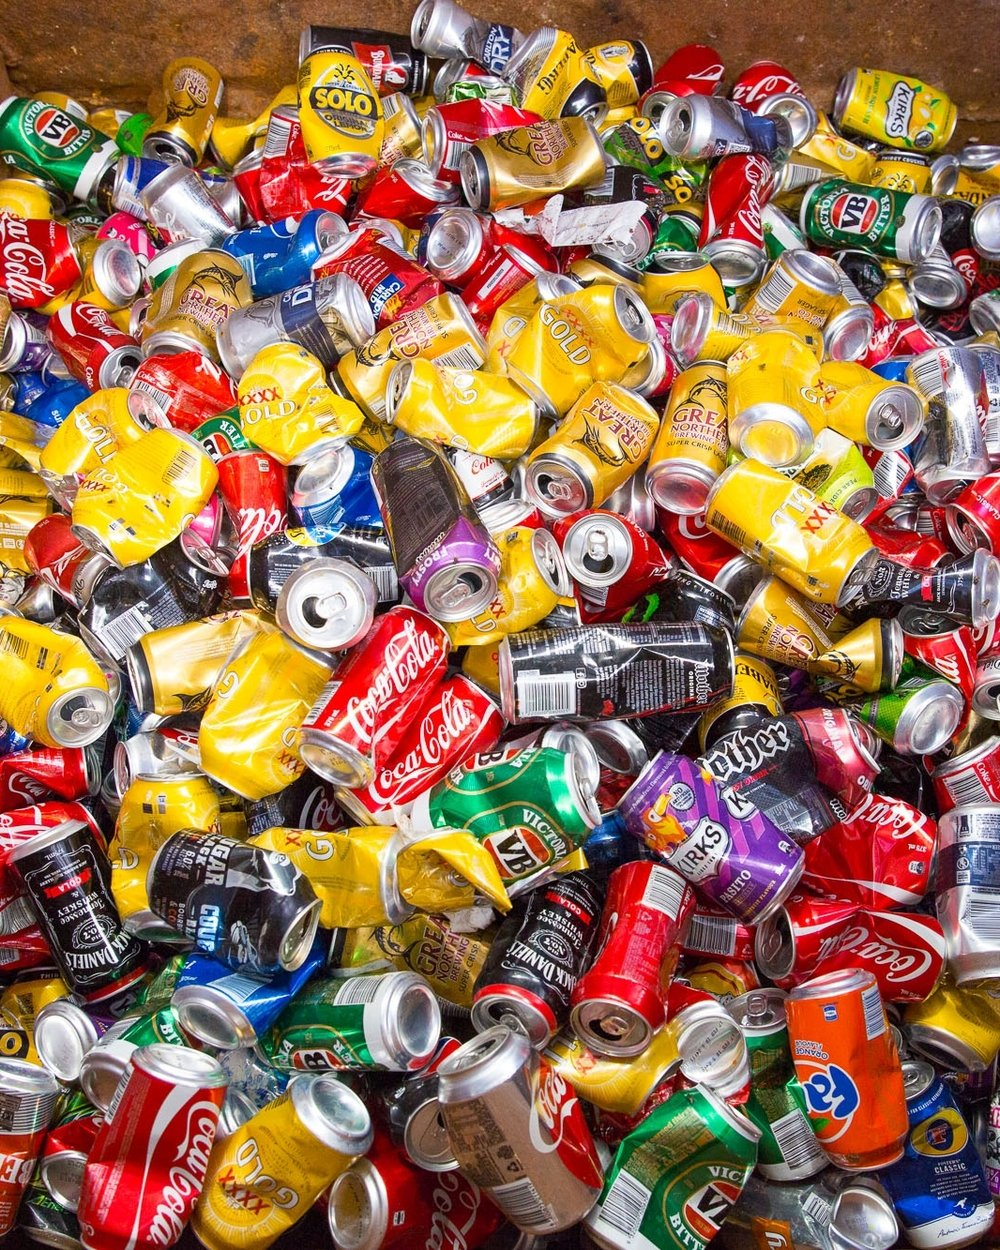 Beer/Soft Drink CanS: 200-500 Years - A soft drink can takes somewhere between 200-500 years to decompose! That is a long time for a very small piece of aluminium. Recycling just one can not only saves hundreds of years of biodegrading, it also saves enough energy to power a TV for three hours